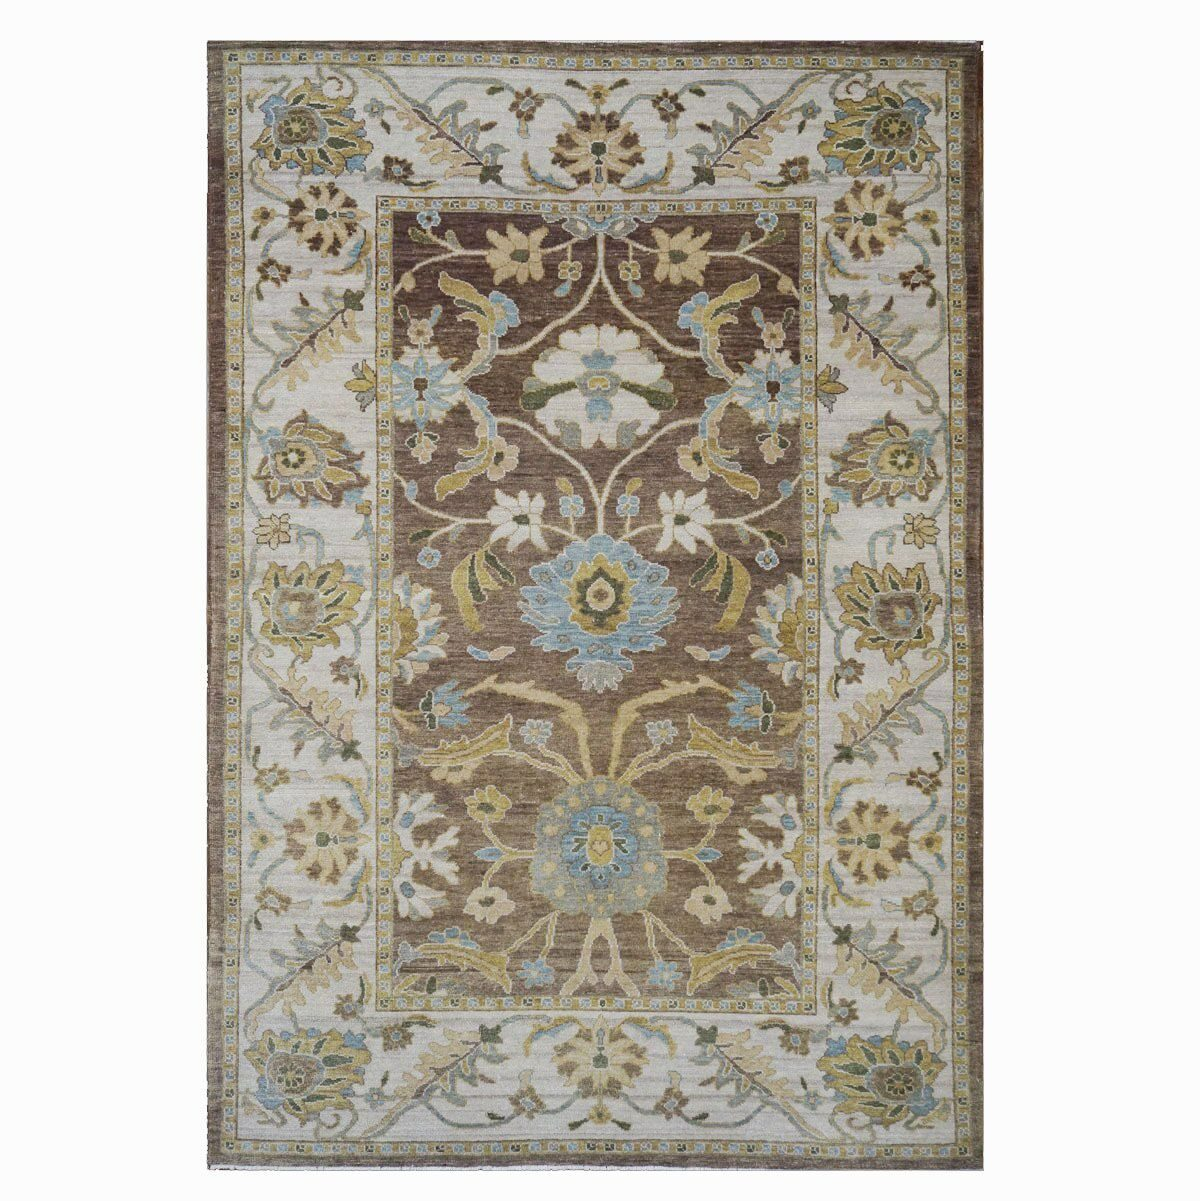 www.ashlyrugs.com Sultanabad Masters Collection 6 x 9 Area Rug